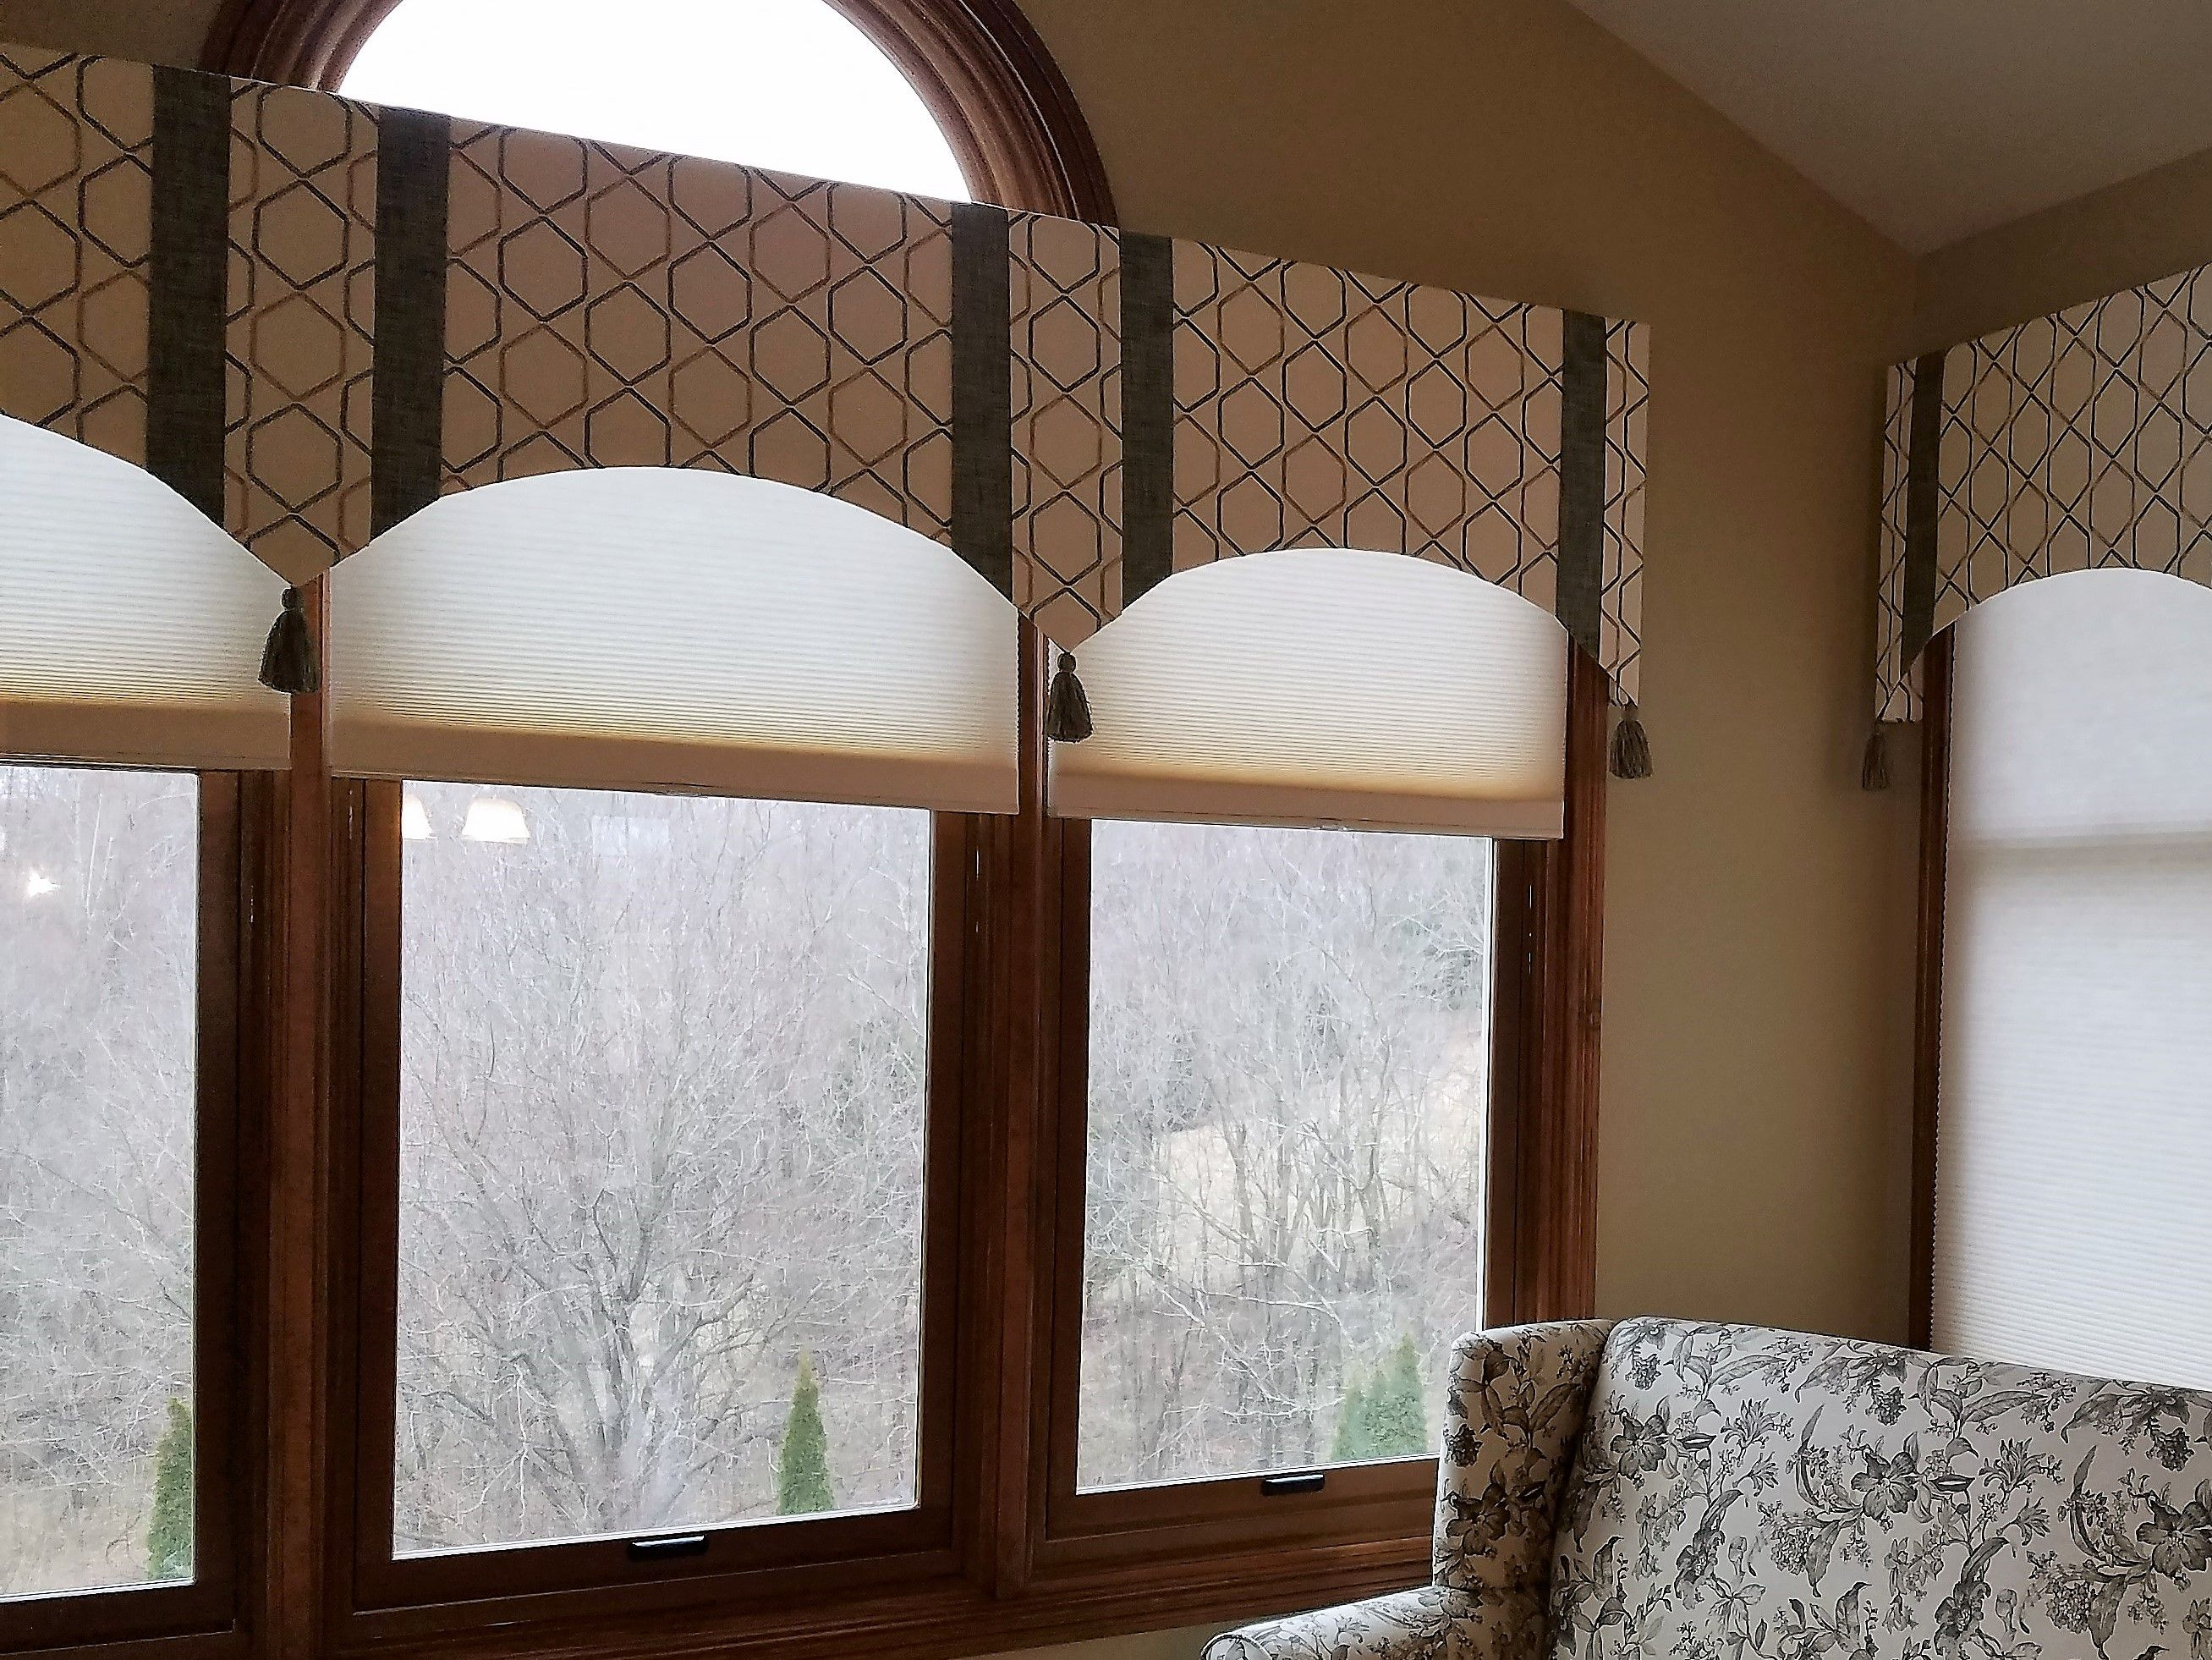 valances cornices windows bedroom valance and window fabric creations curtains sewn by s pin pate meadow eleanor